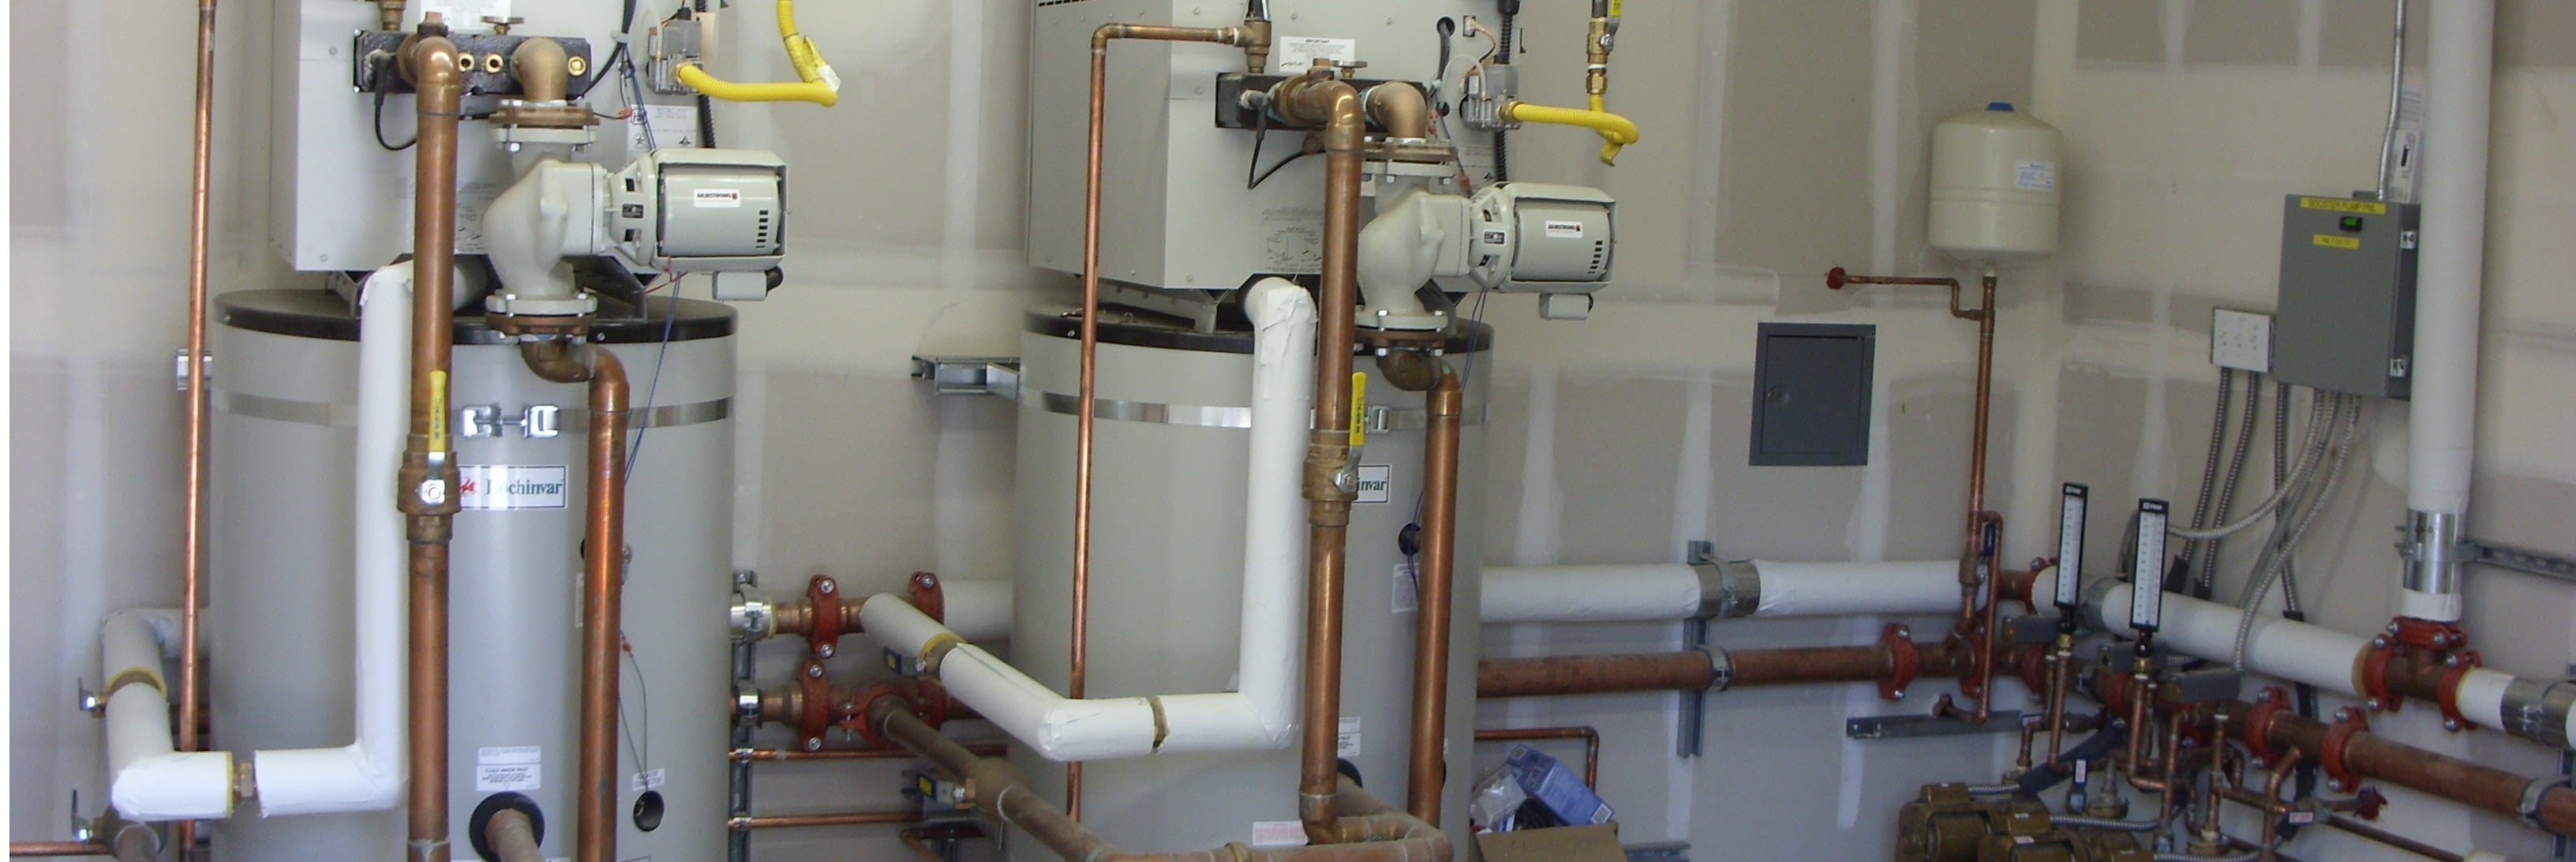 Commercial Plumbing System Naples, FL